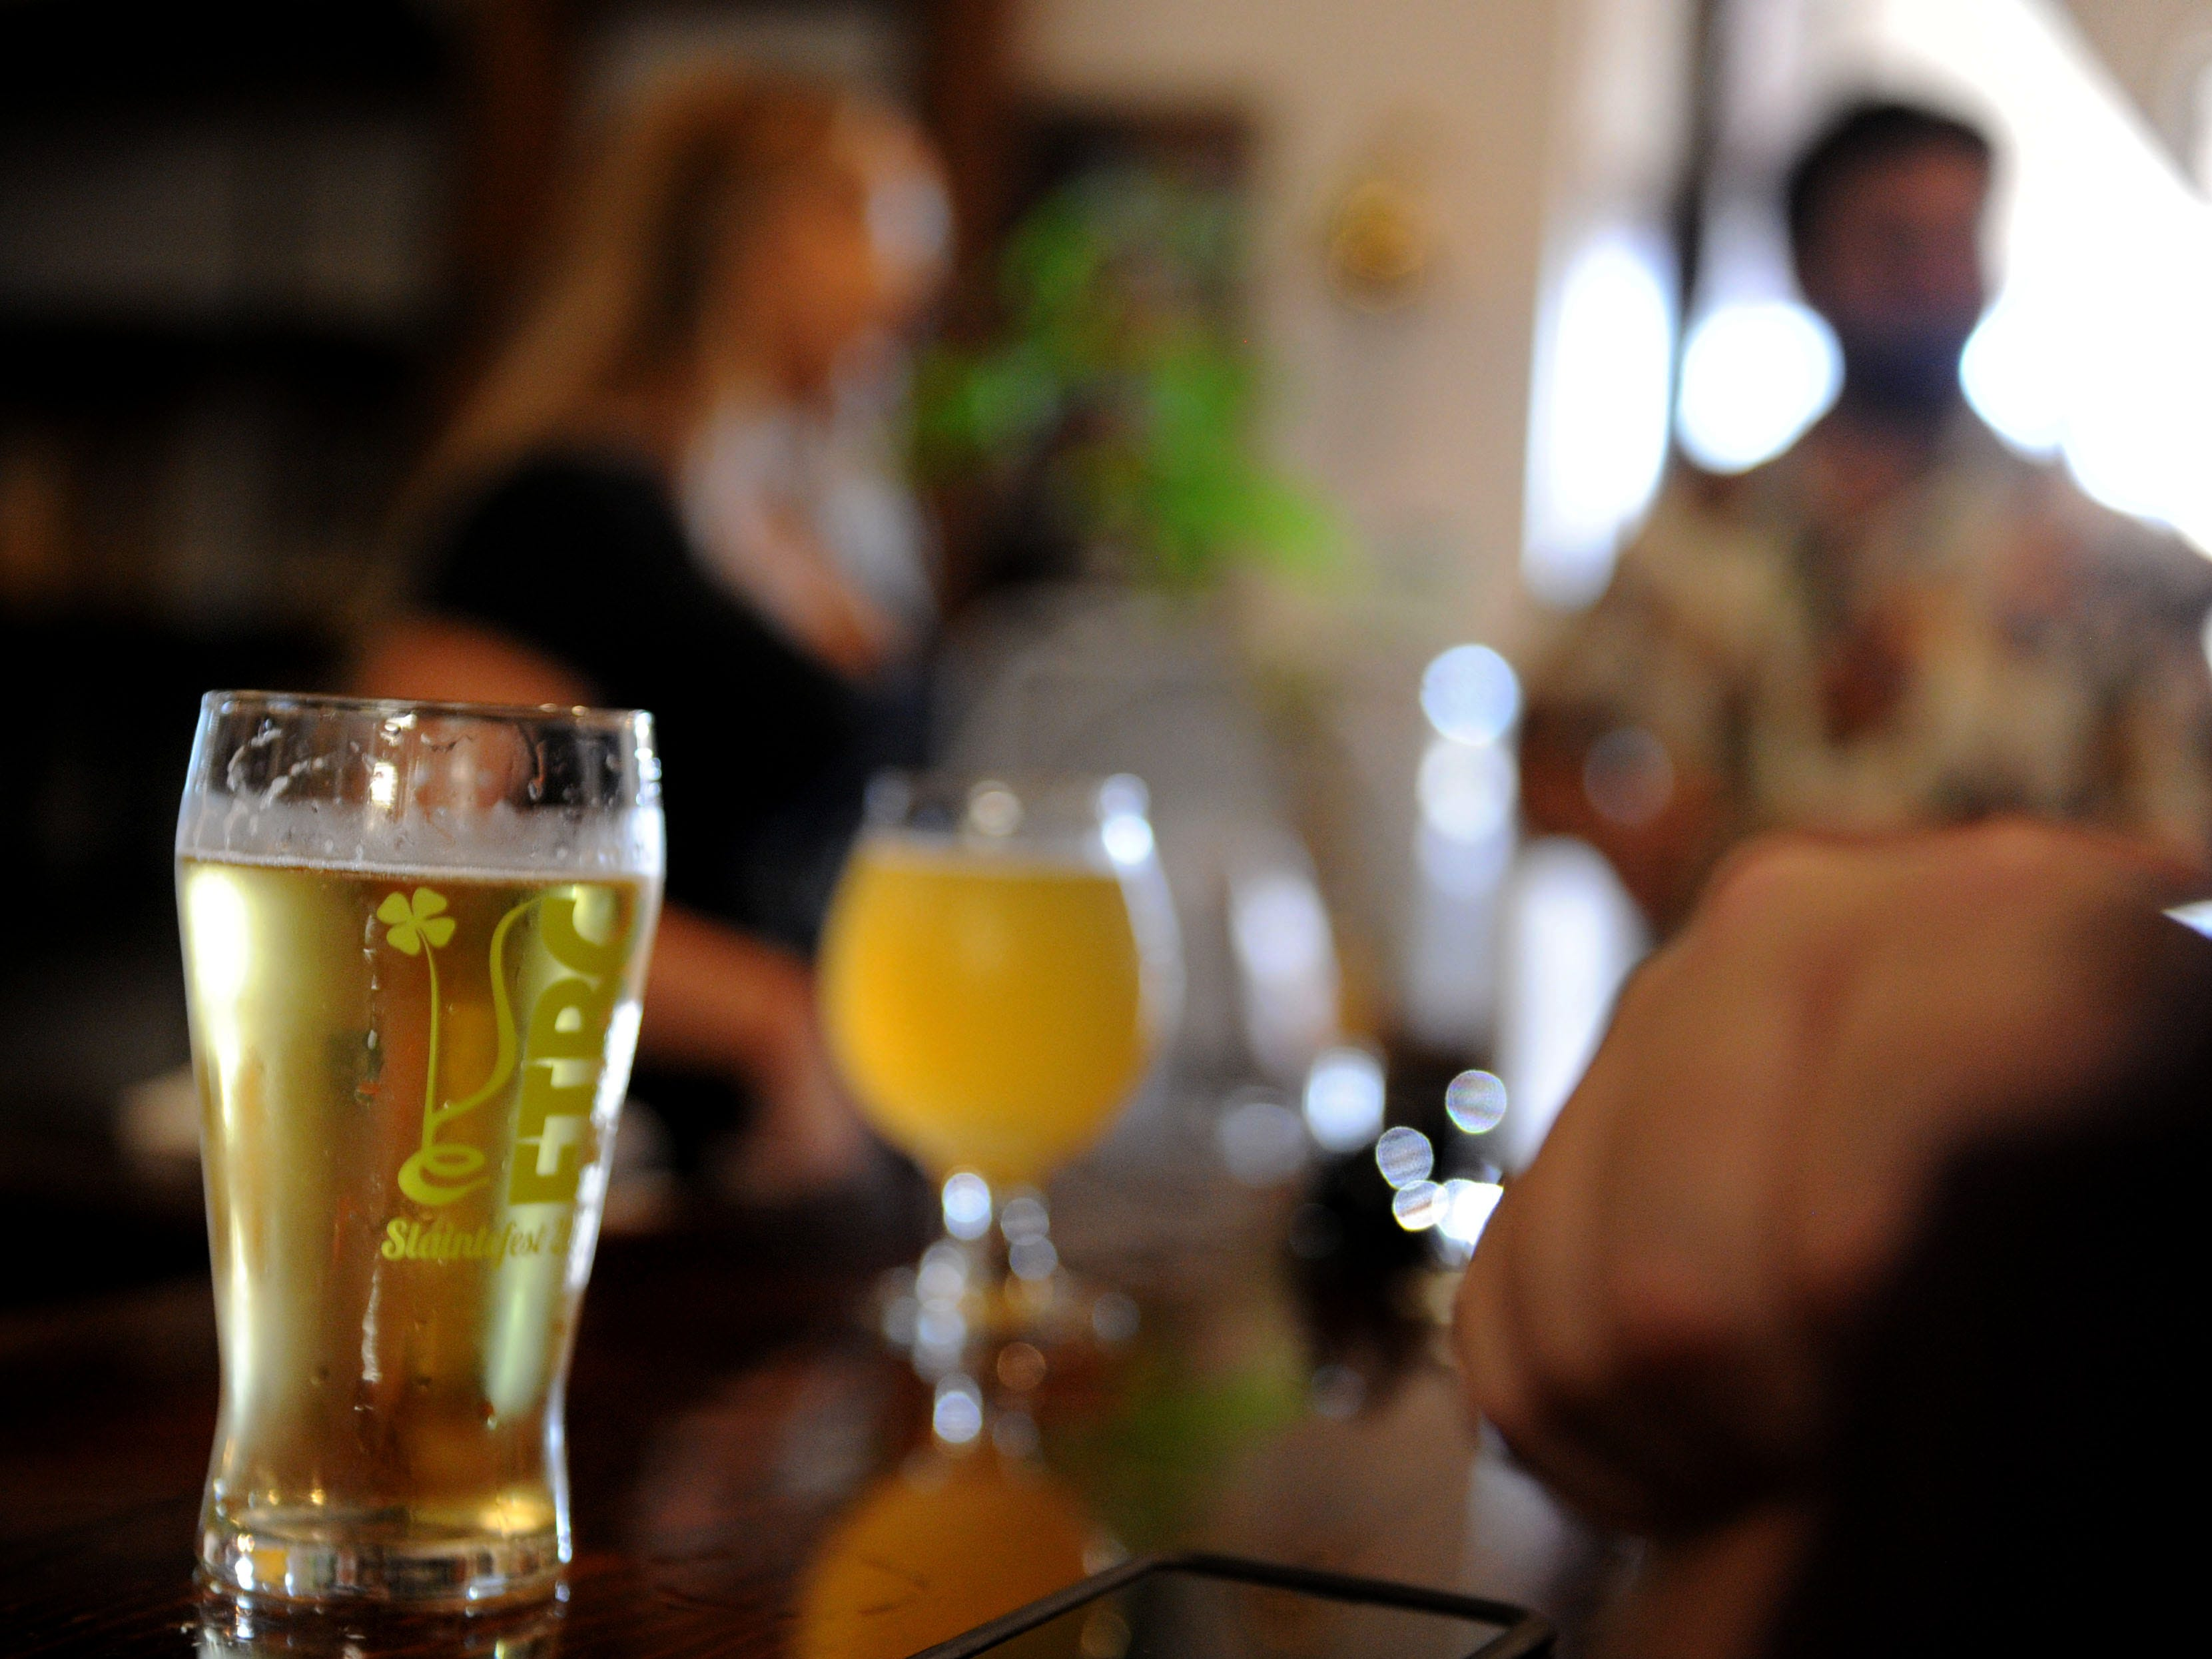 Customers enjoy an afternoon beer at Five Threads Brewing Company in Westlake Village. The company was founded by Tim Kazules, who took up brewing after a career in the bioscience industry.